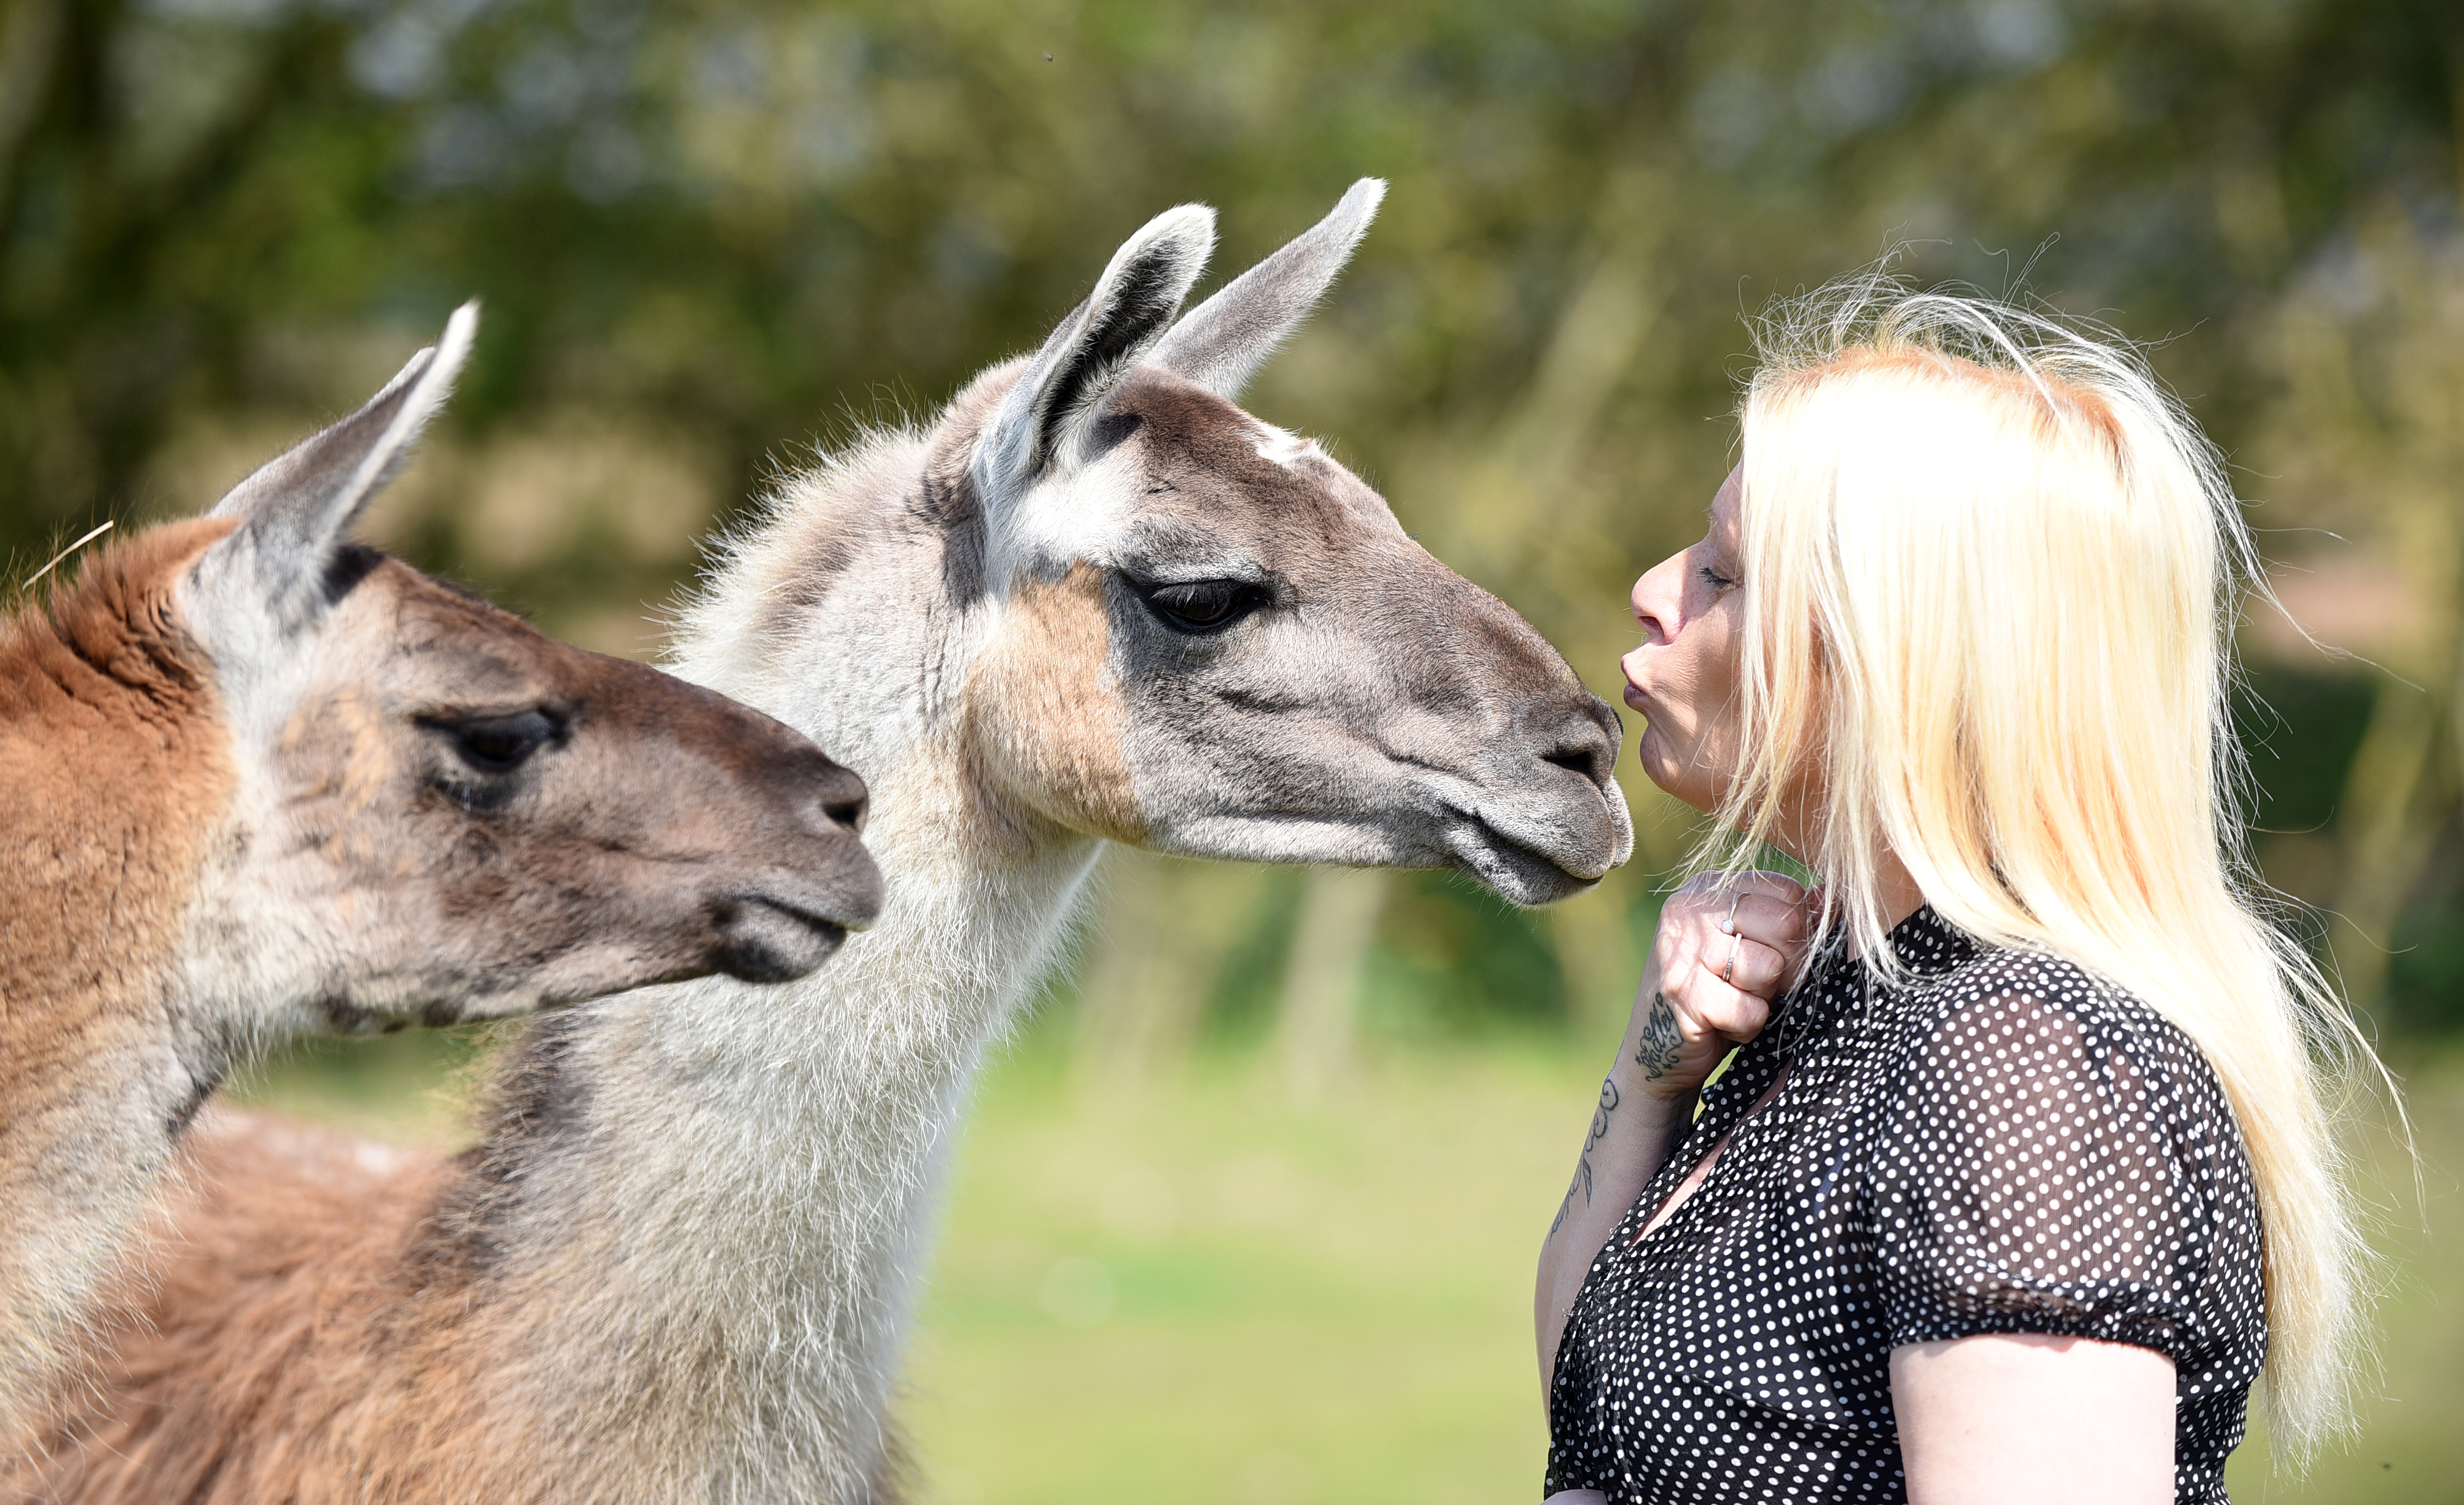 Friendly and approachable llamas